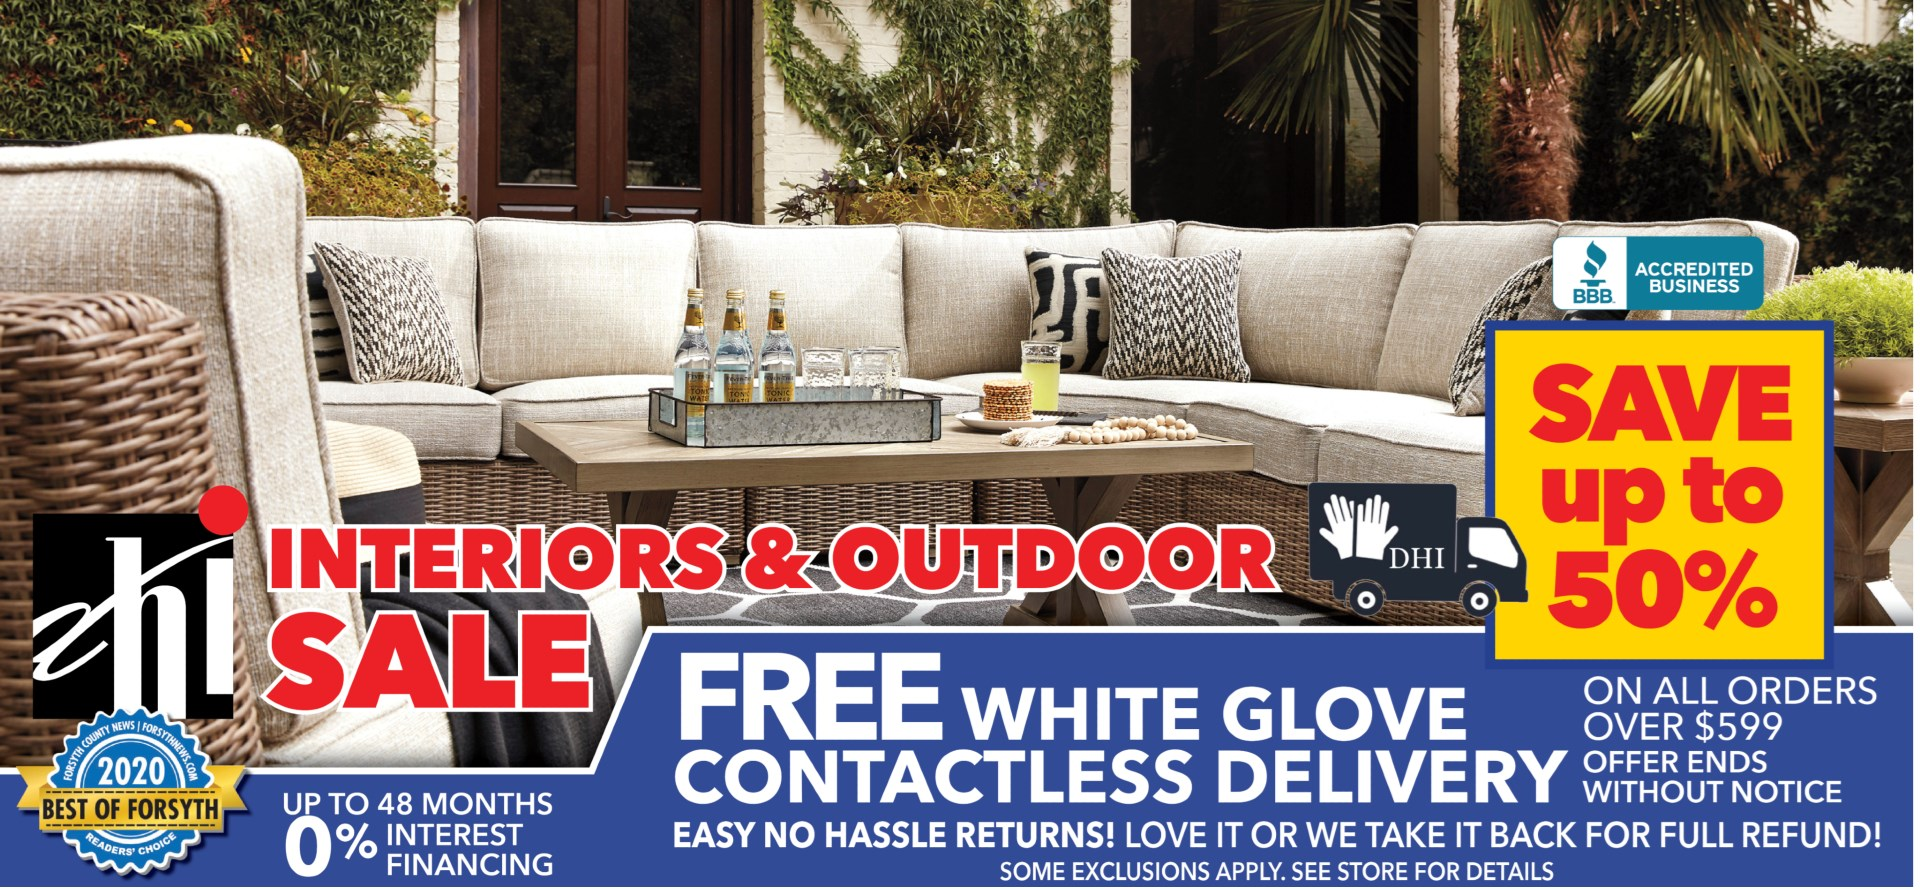 Interiors and outdoor sale